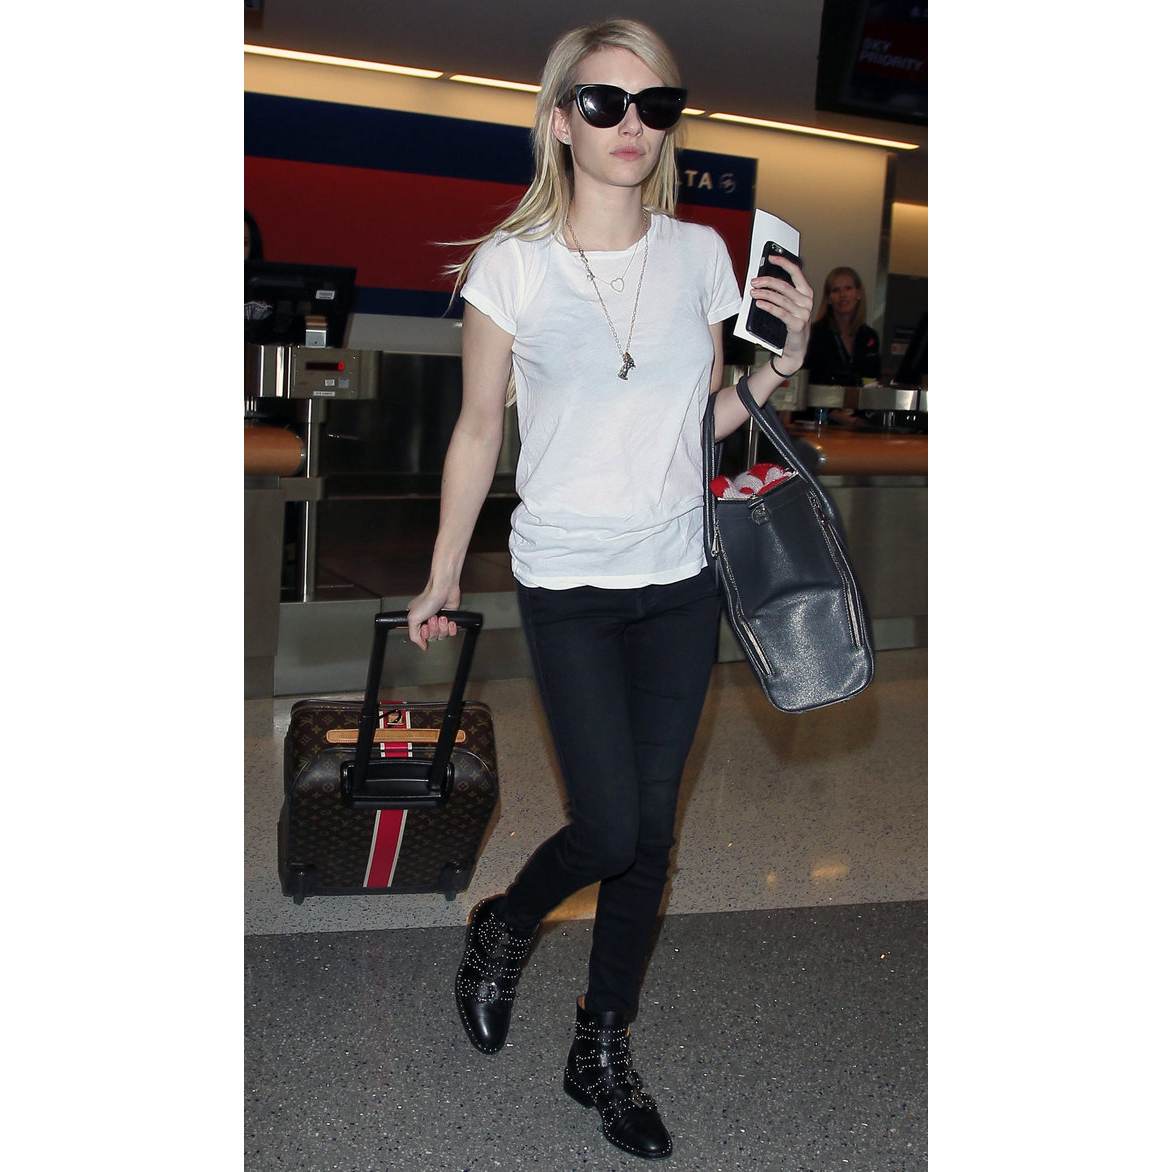 FWX PARTNER INSTYLE WHAT TO WEAR AIPORT